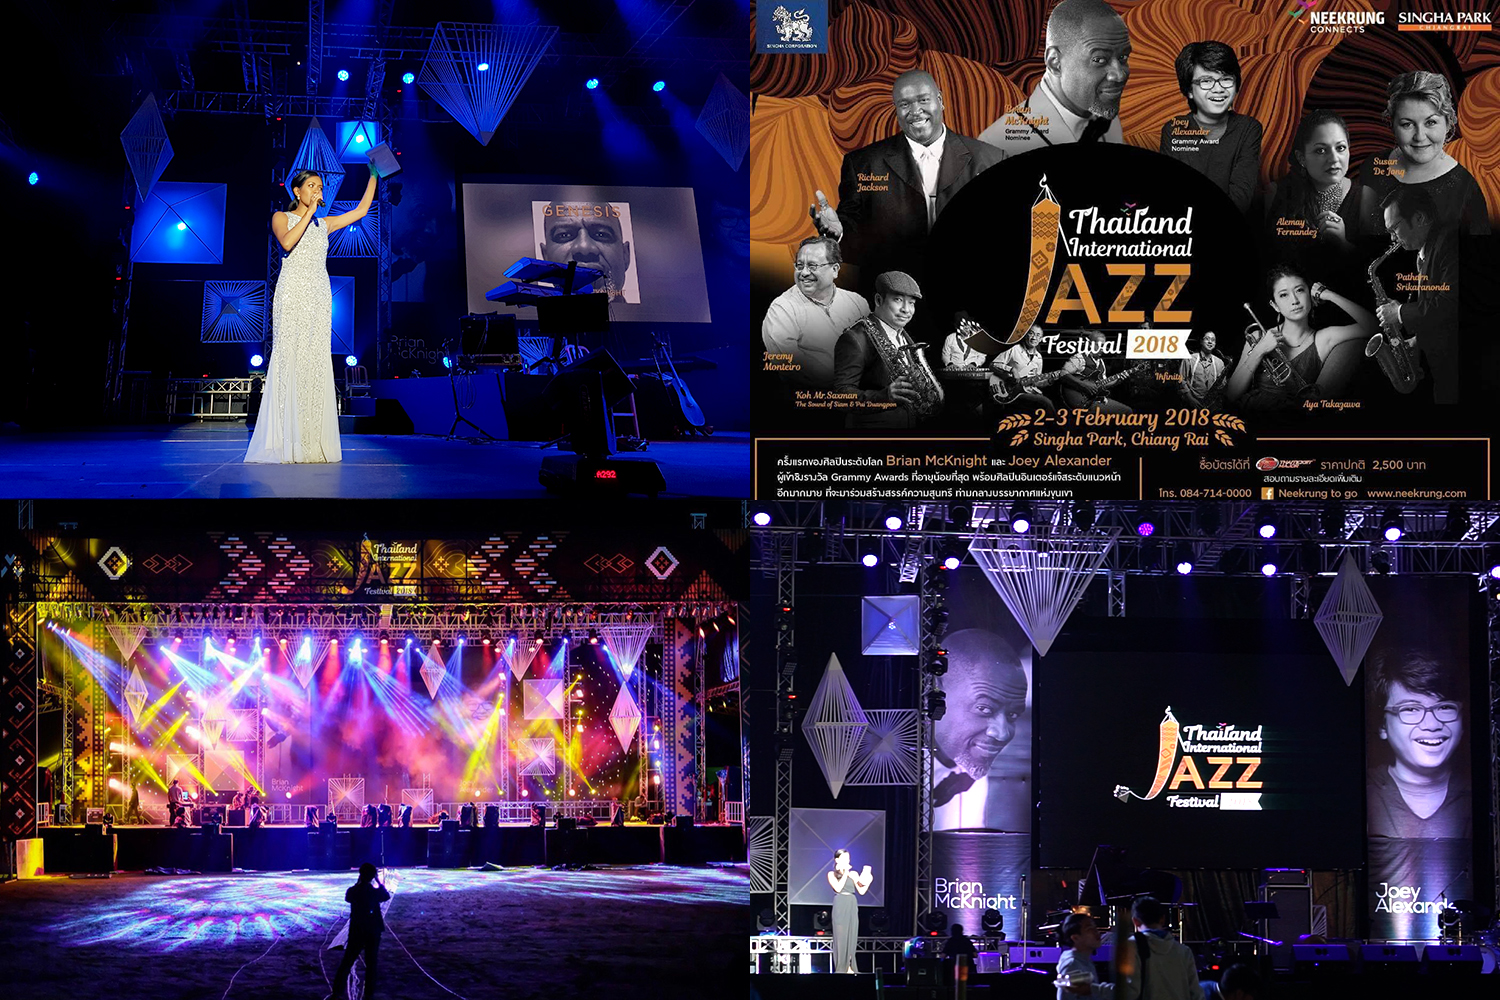 International Jazz Festival 2018